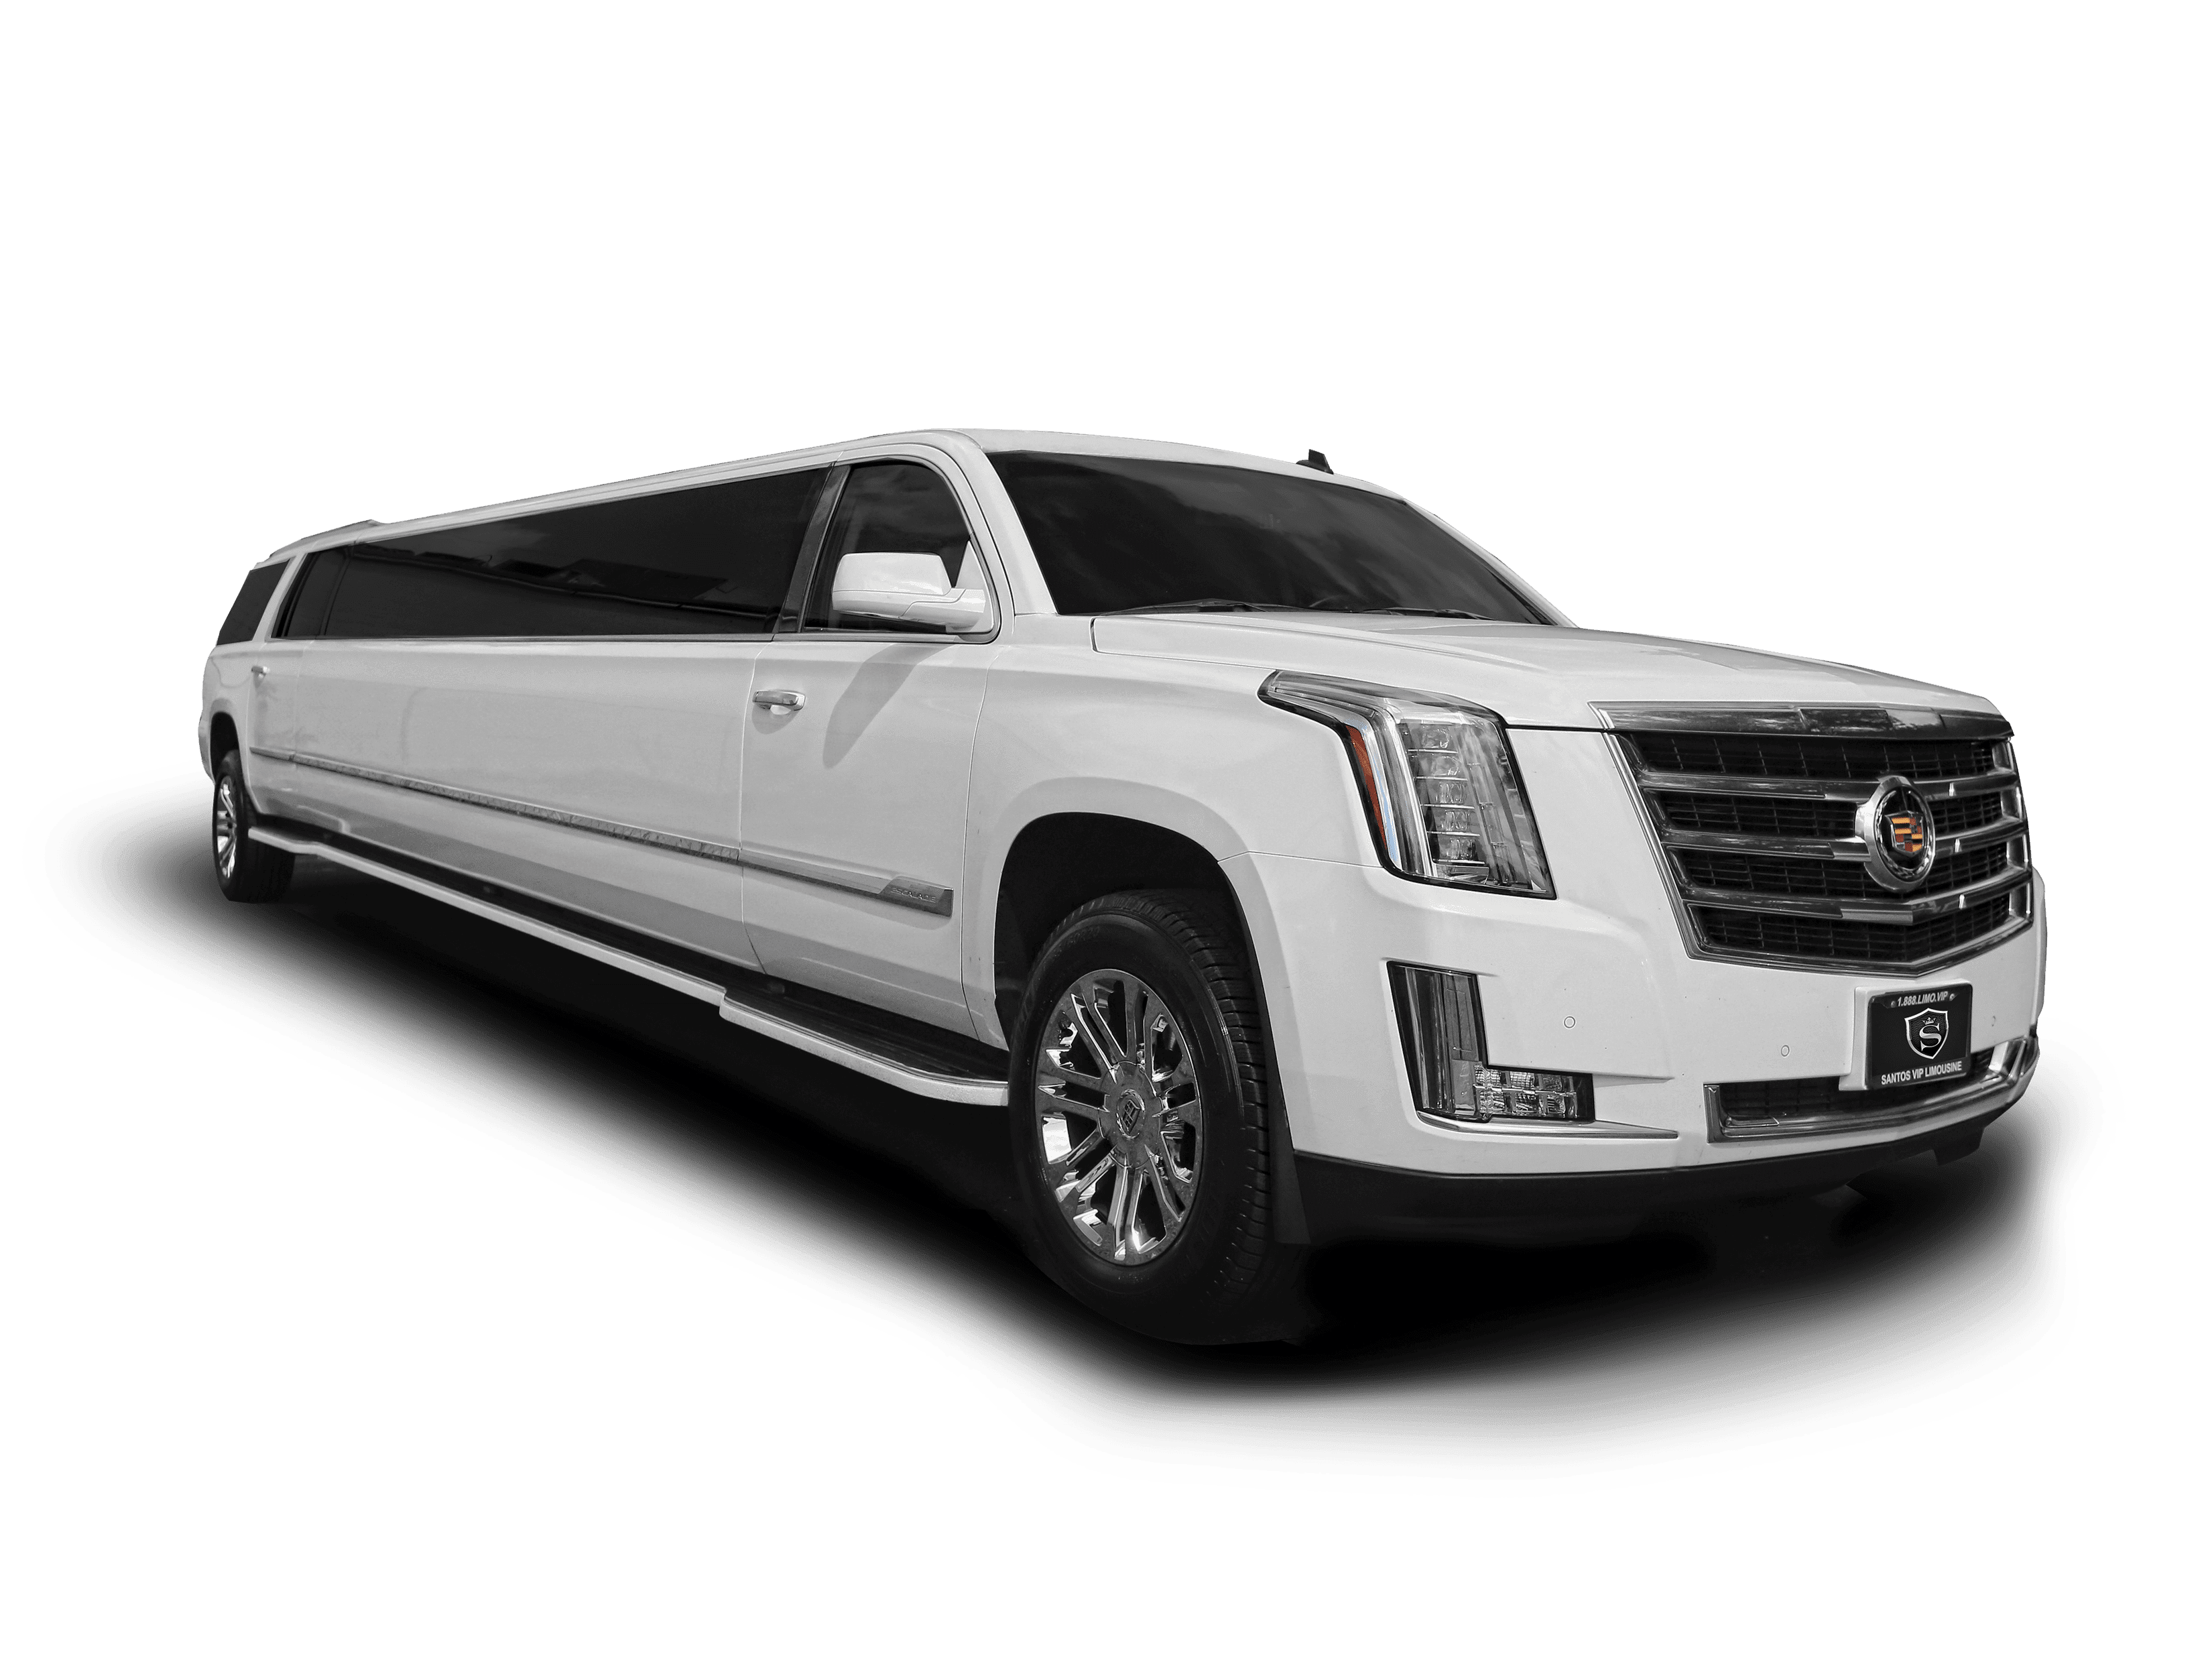 Cadillac Escalade ESV limousine for bachelorette party limo rental in NJ and NY